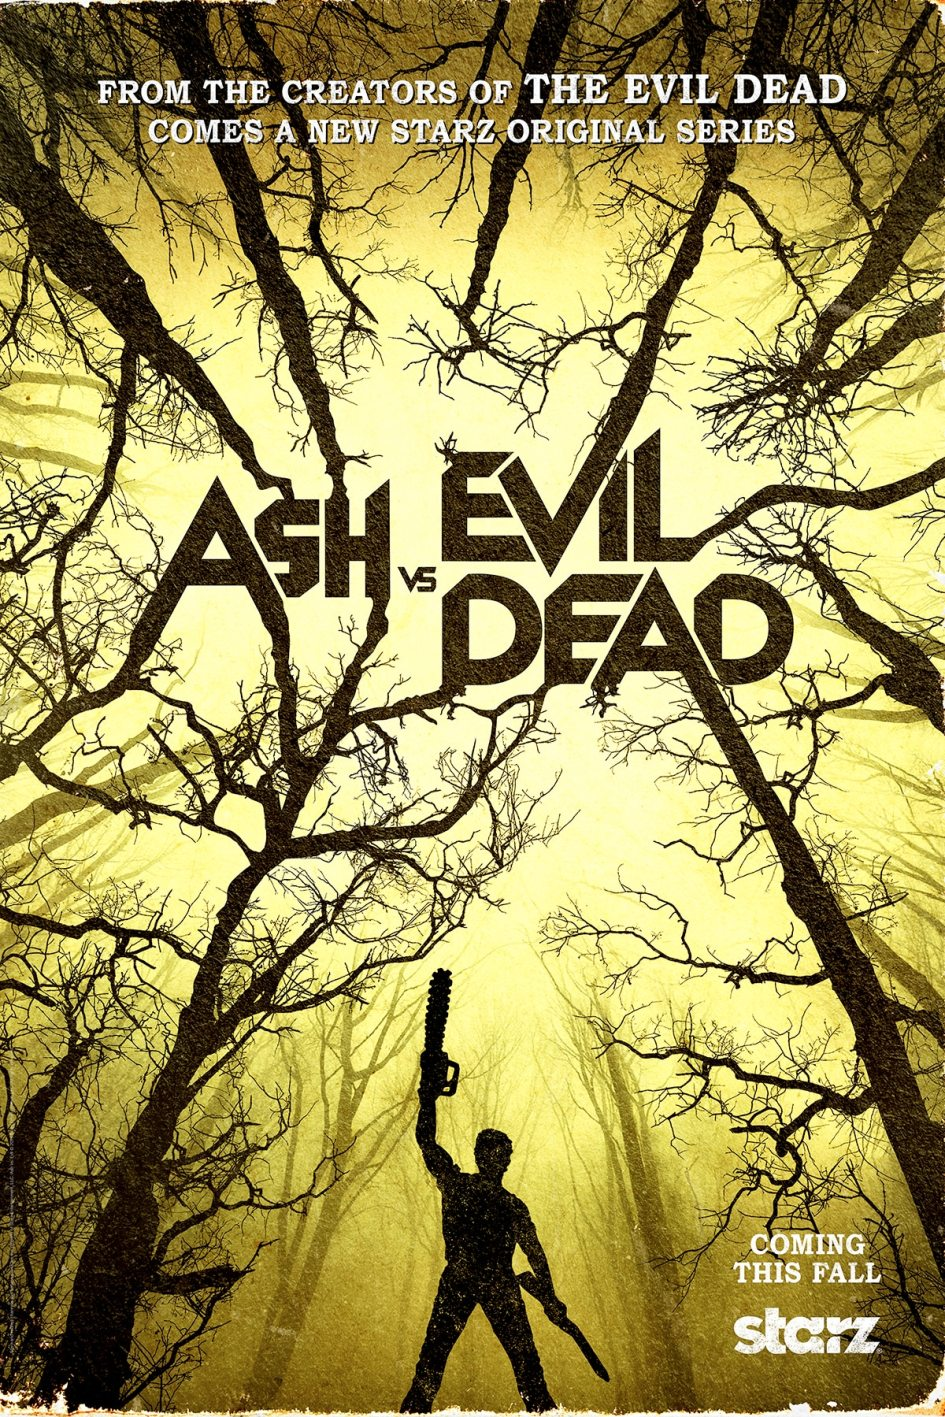 AVED Teaser 1200x1800 Final.jpg?zoom=1 - #SDCC15: Ash vs. Evil Dead - Gory New Details from Bruce Campbell, Sam Raimi, and More!